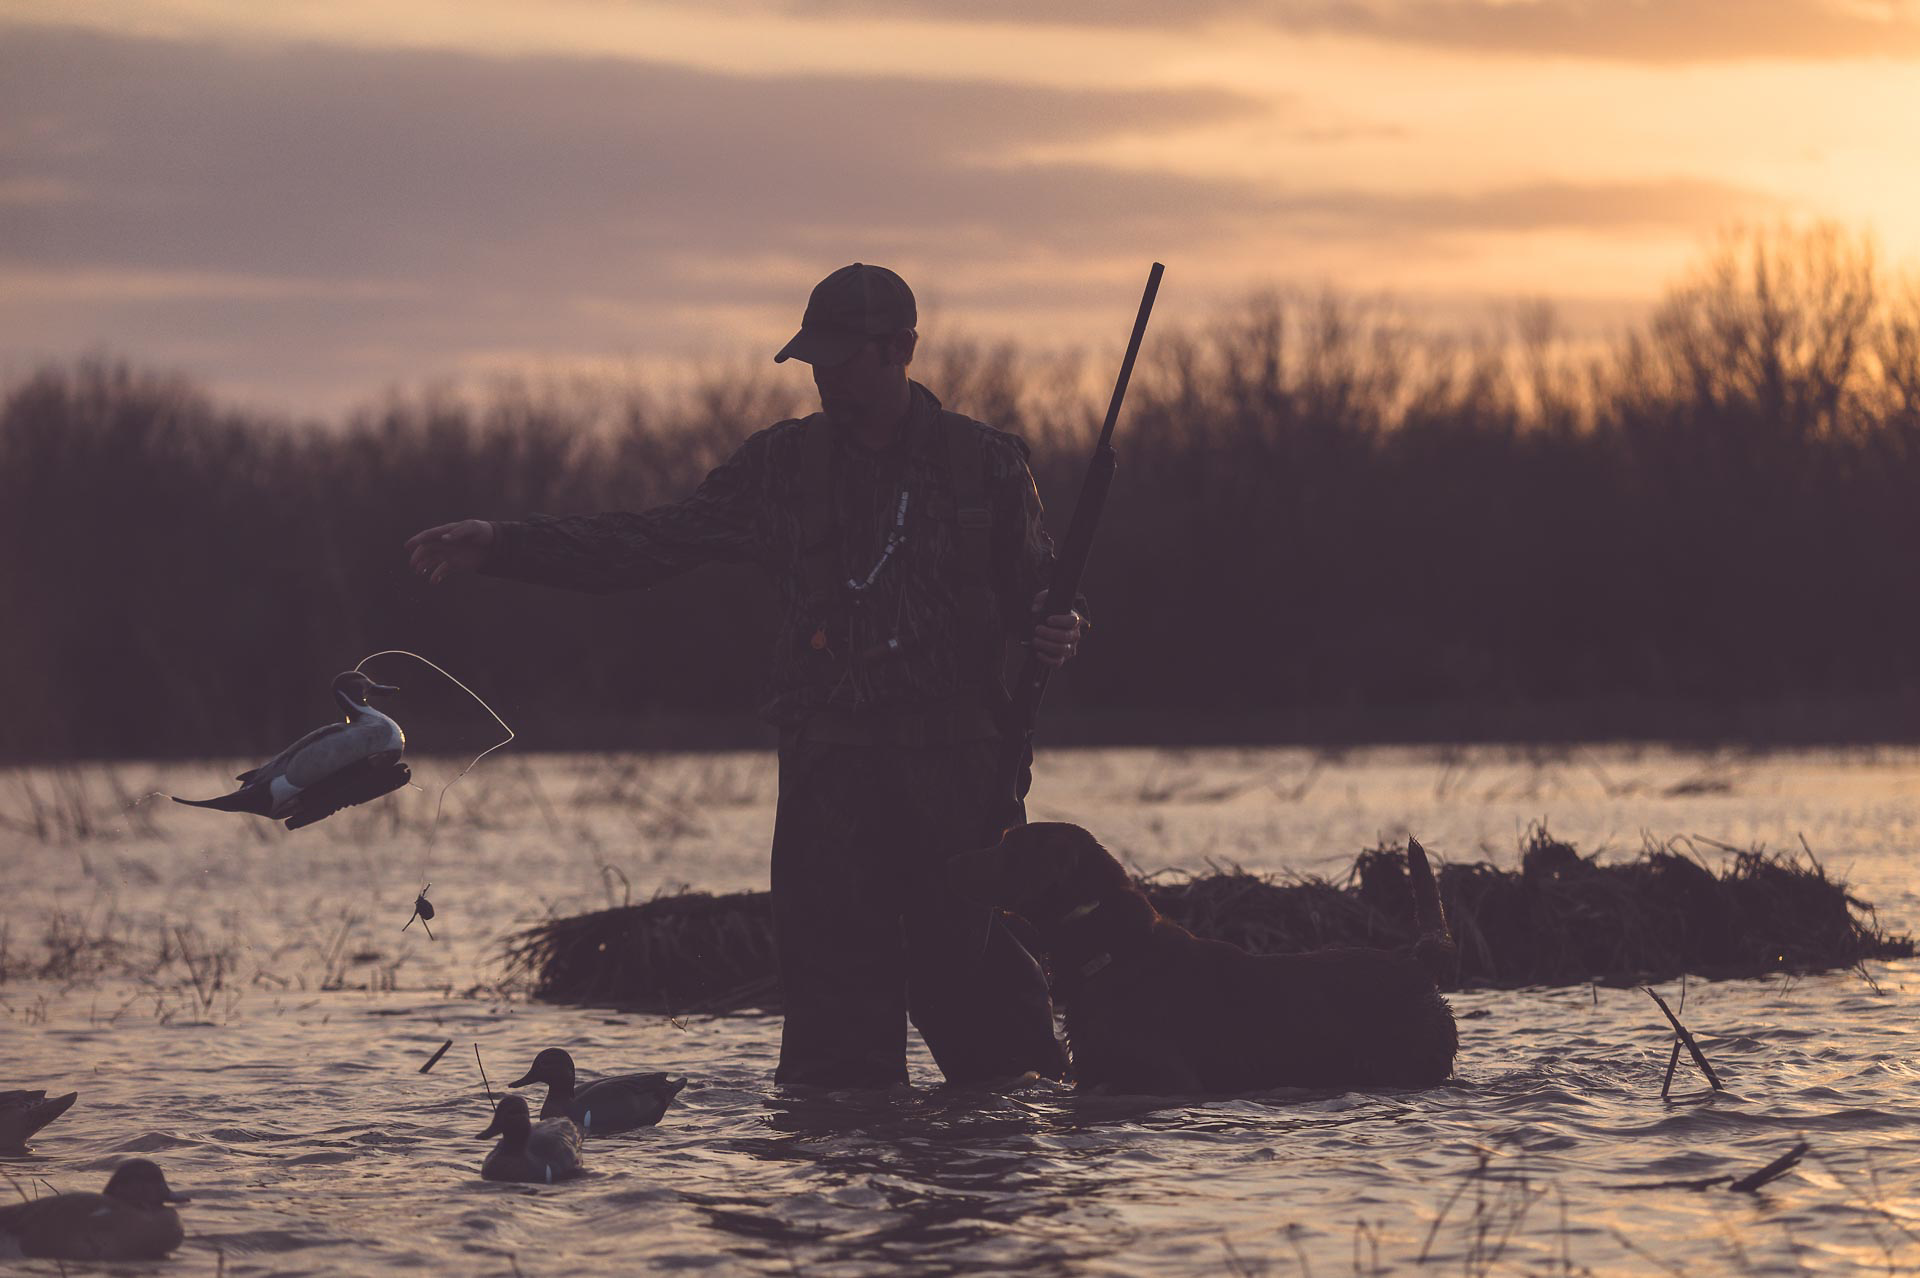 Duck hunting guide Richard spreading duck decoys in the early morning, shotgun in had. © Tony Bynum